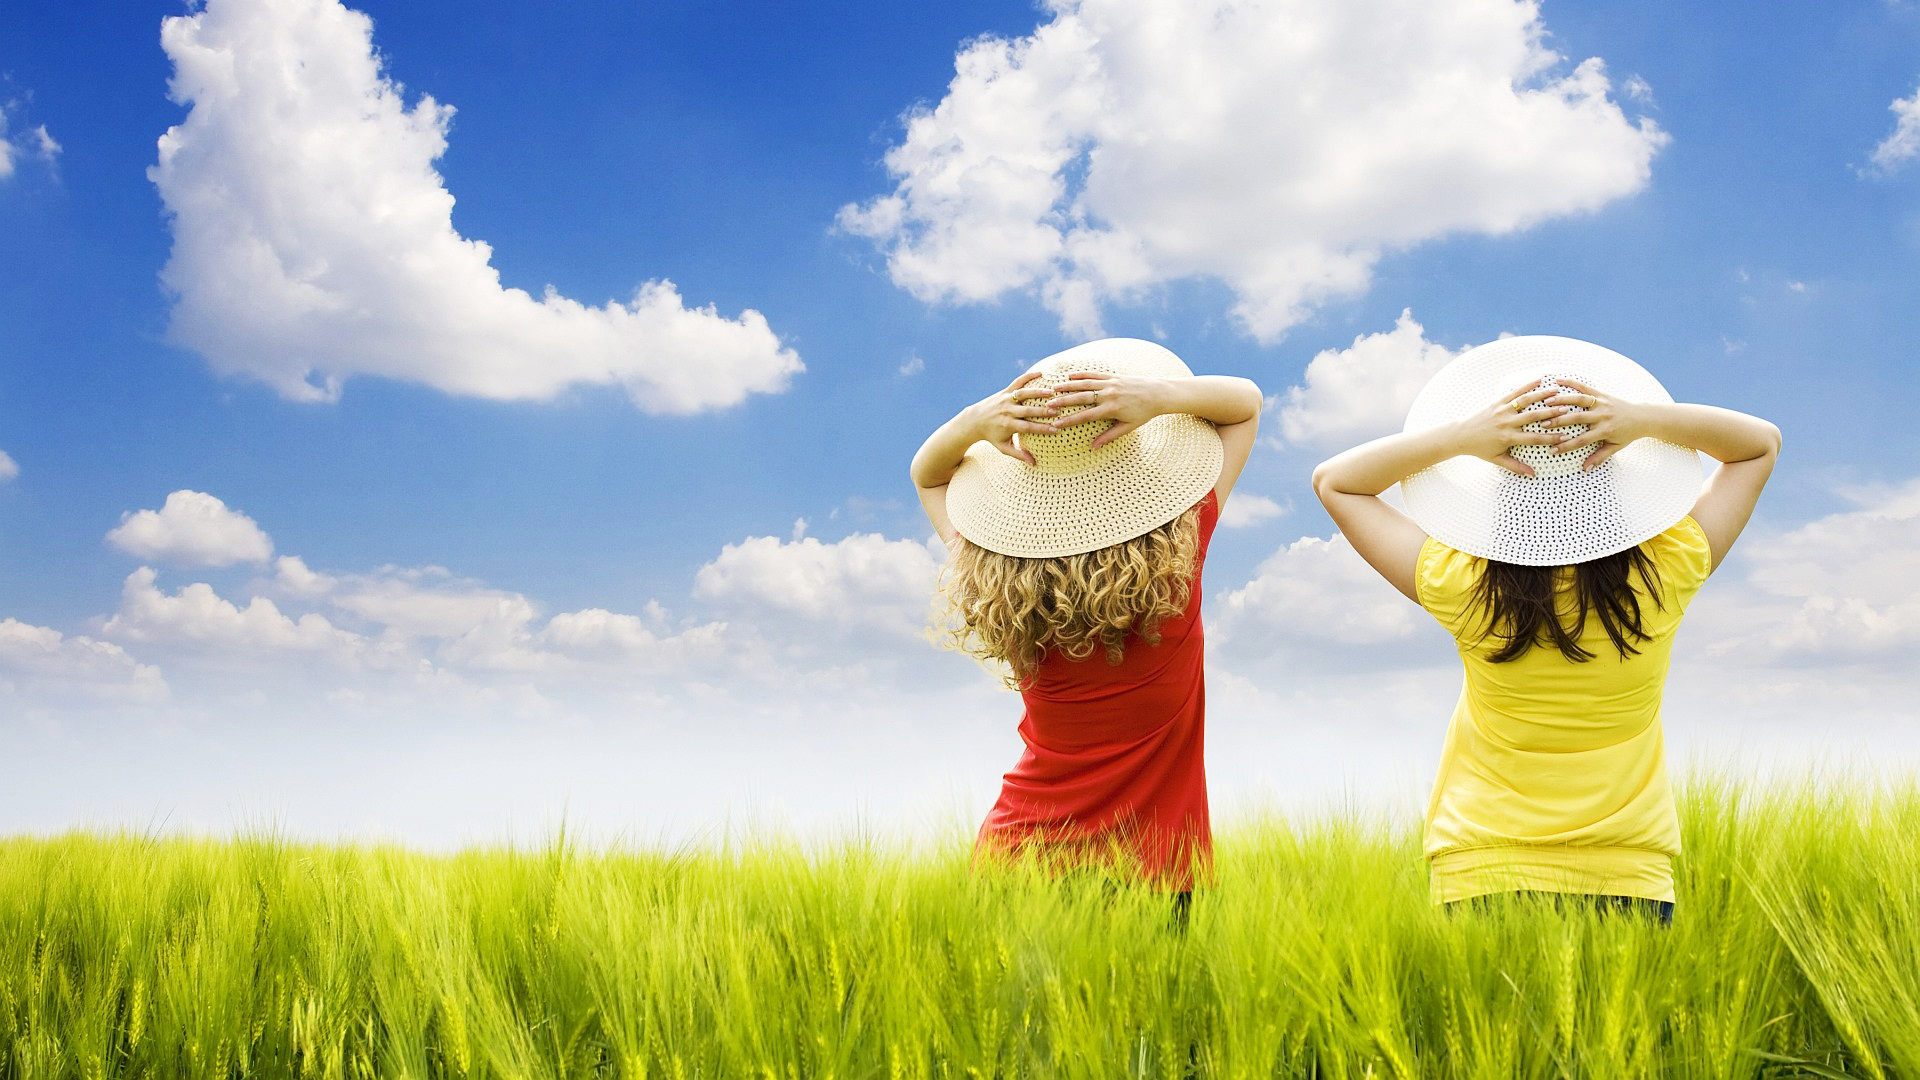 Wallpaper Of Natural Scenery Two Girls Standing In The Field